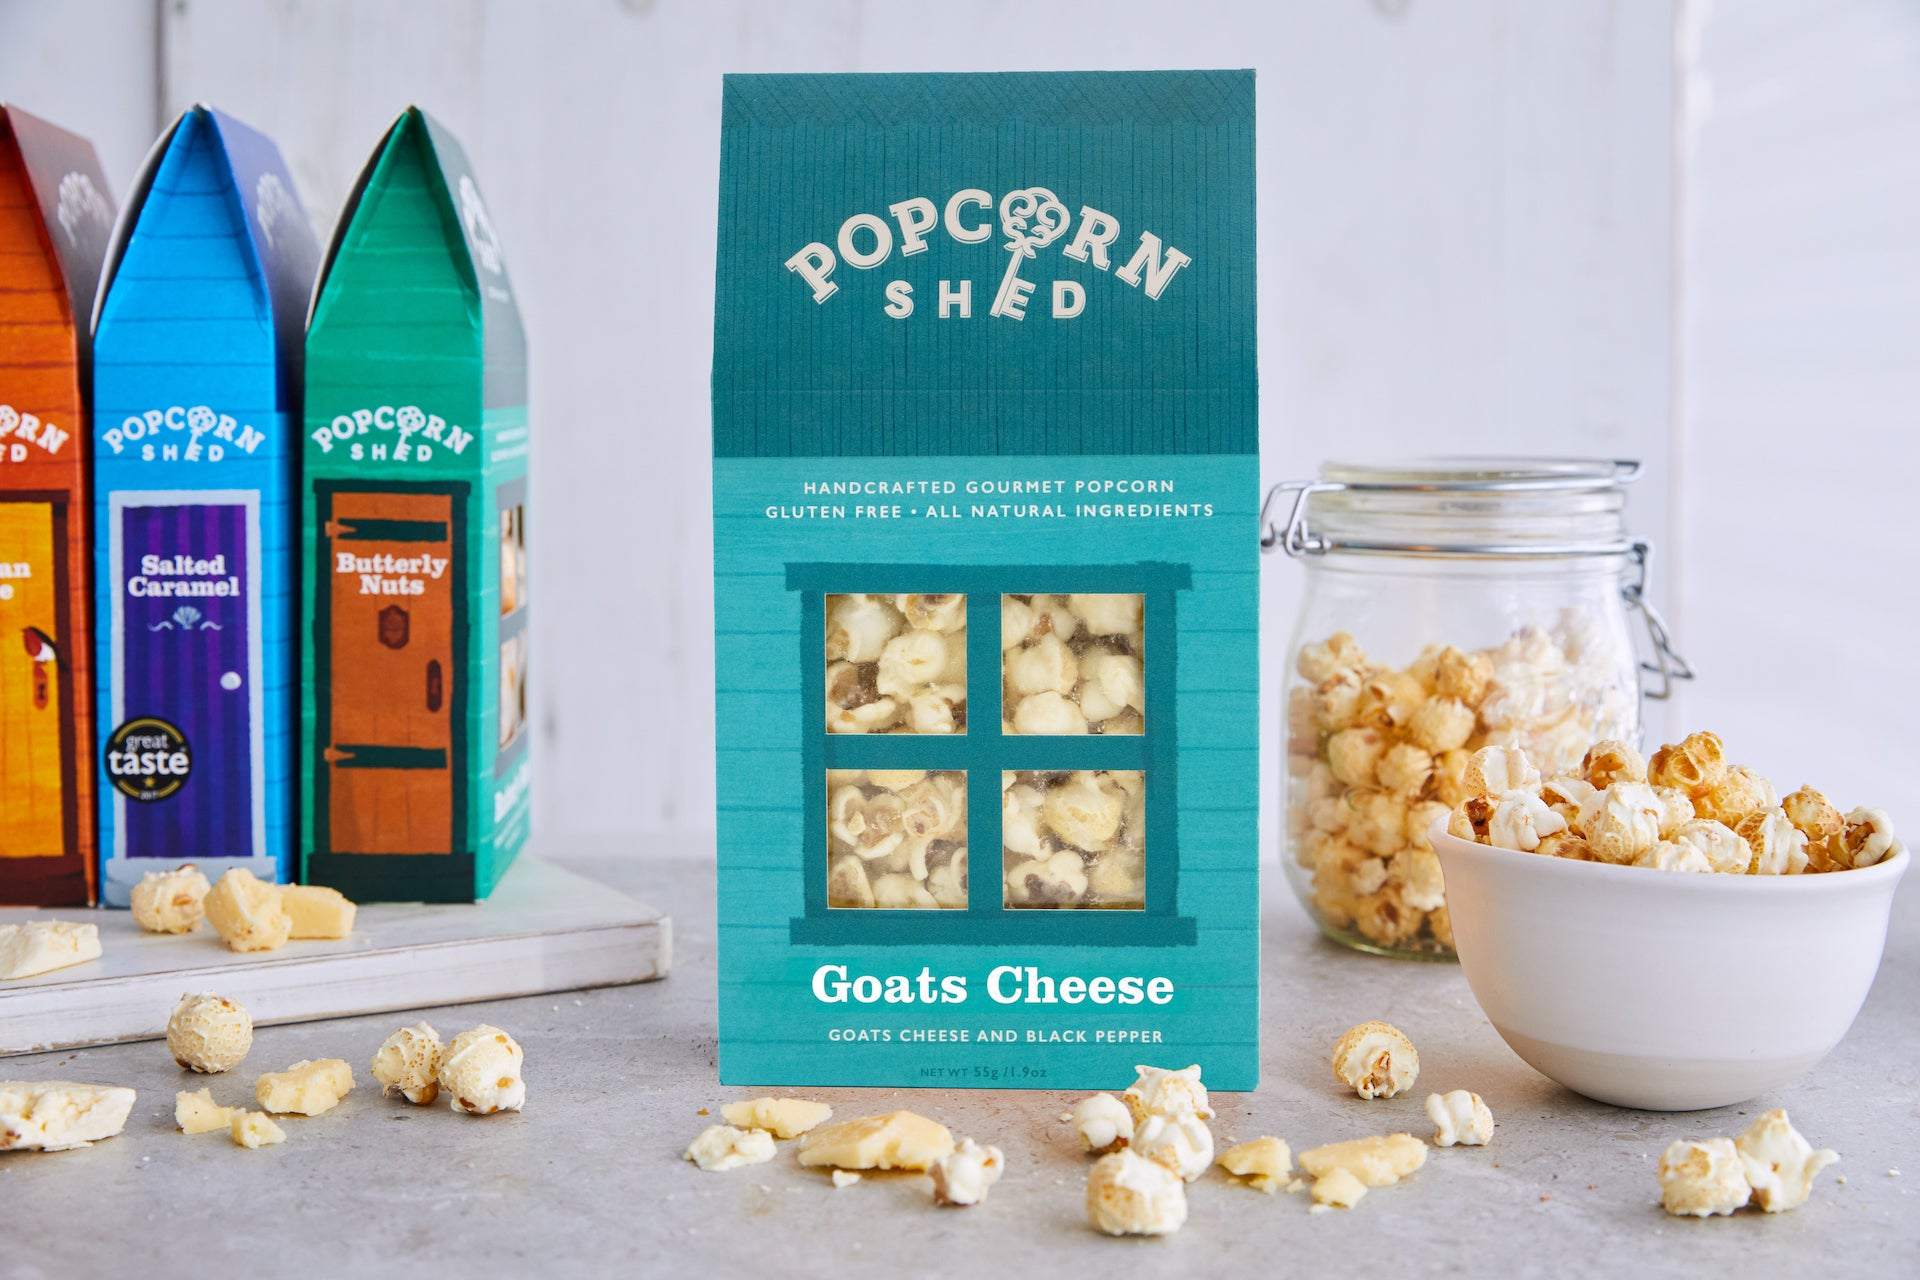 Goats Cheese and Black Pepper Gourmet Popcorn